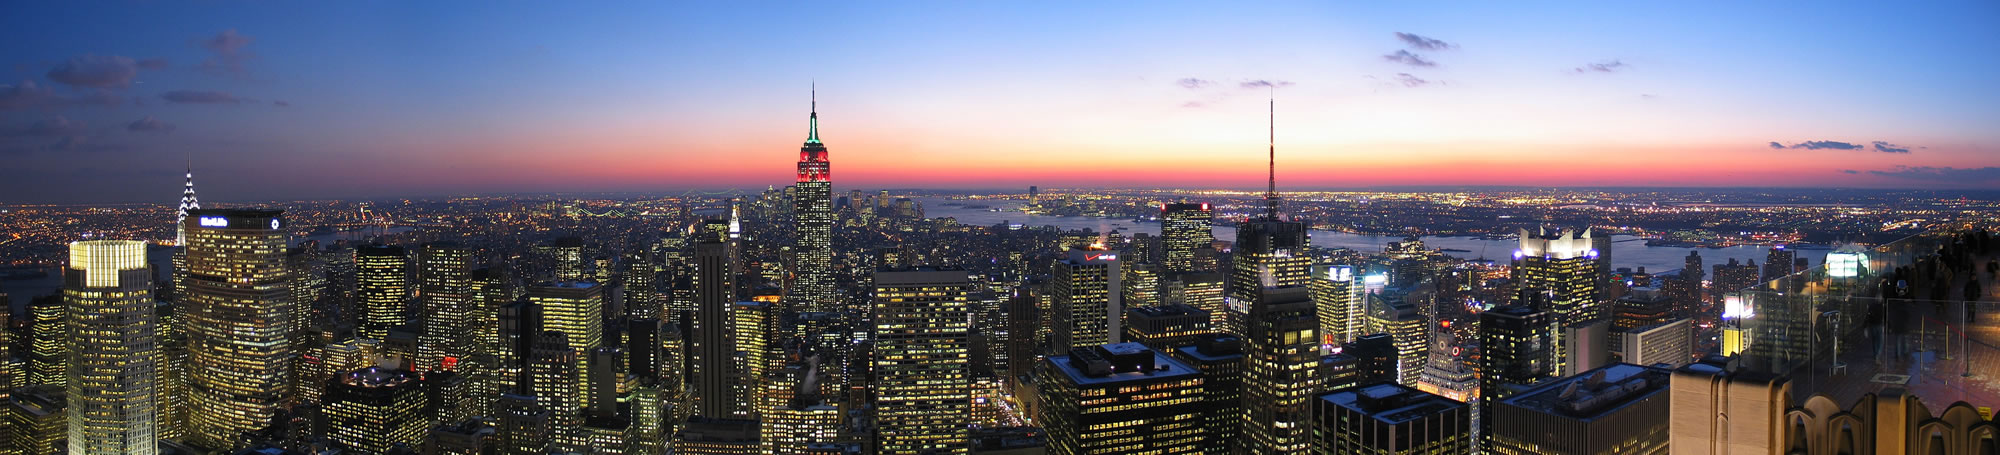 NYC_Top_of_the_Rock_Pano-small